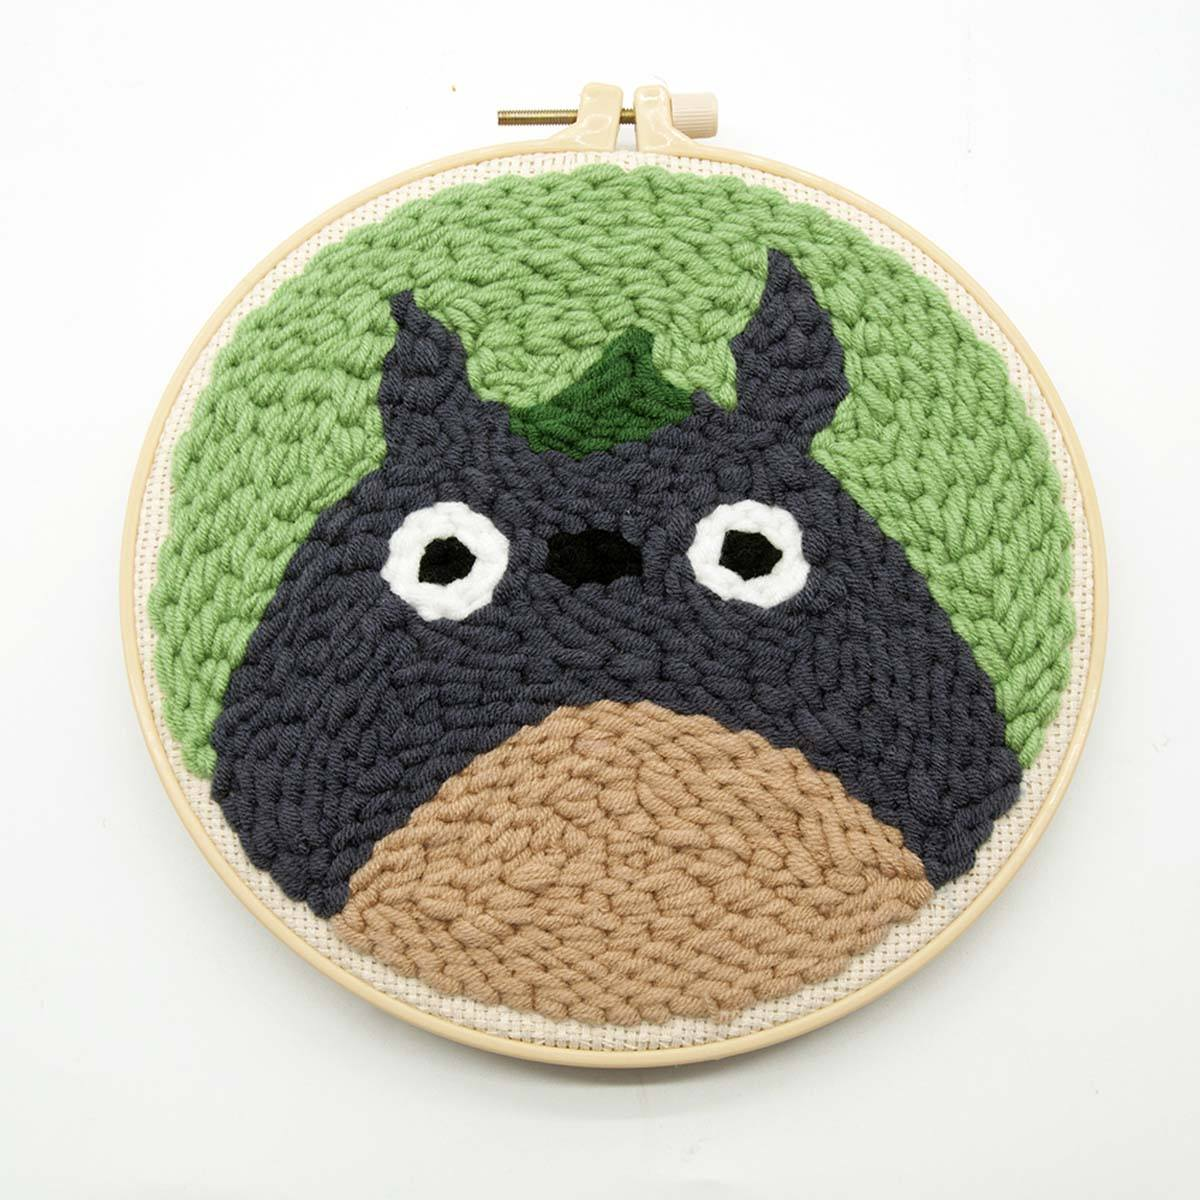 Totoro Punch Needle Kit